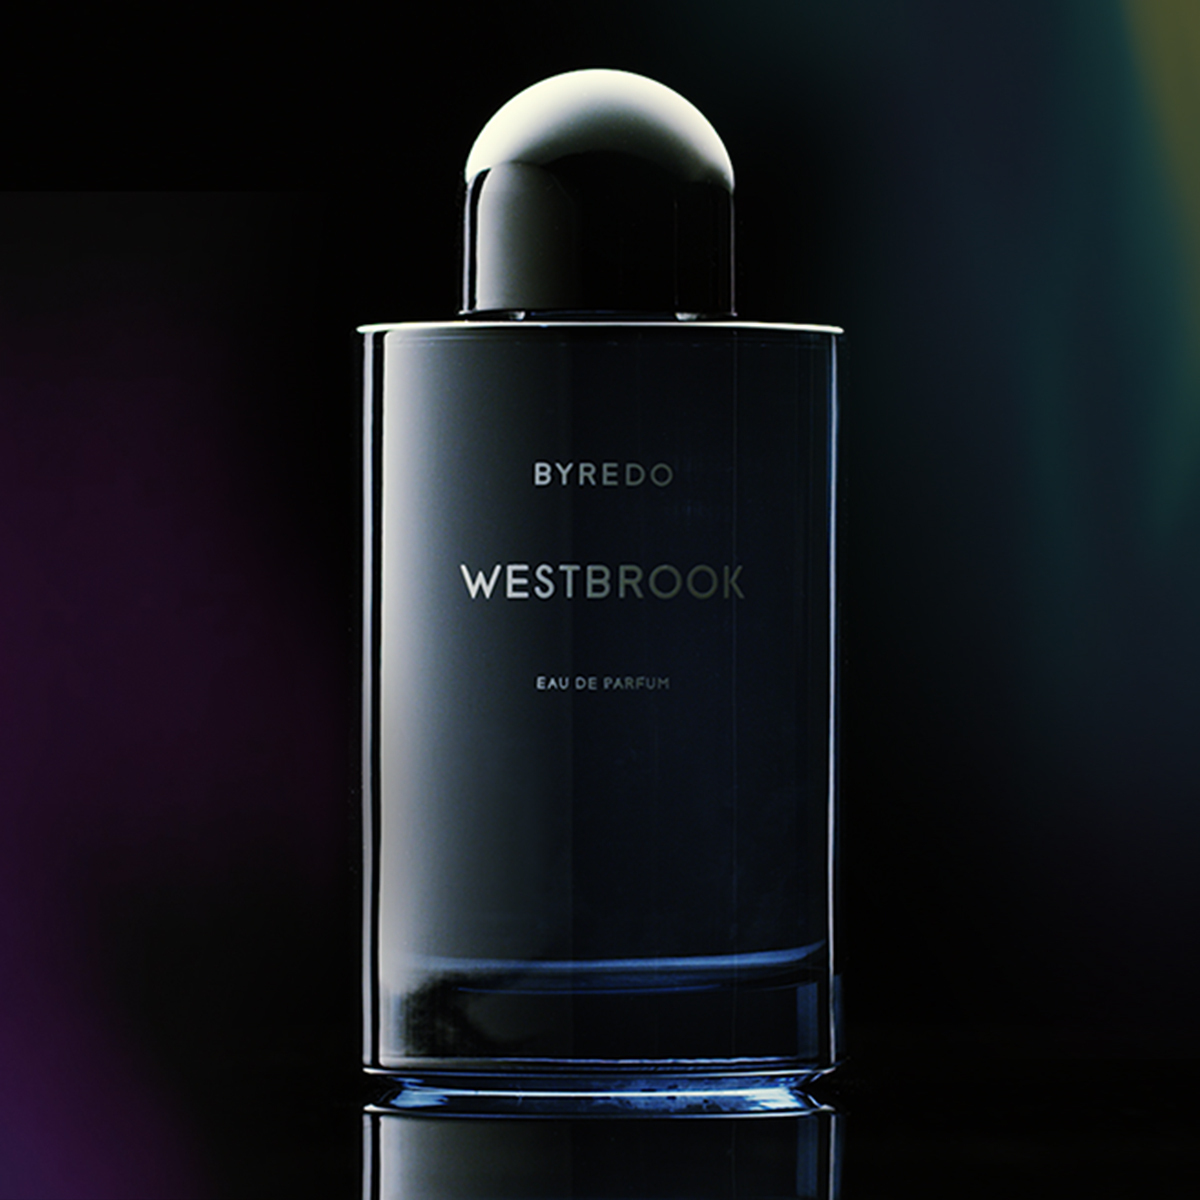 WESTBROOK by BYREDO 5ml Travel Spray Perfume Gin Vetiver RUSSELL OKC THUNDER RC